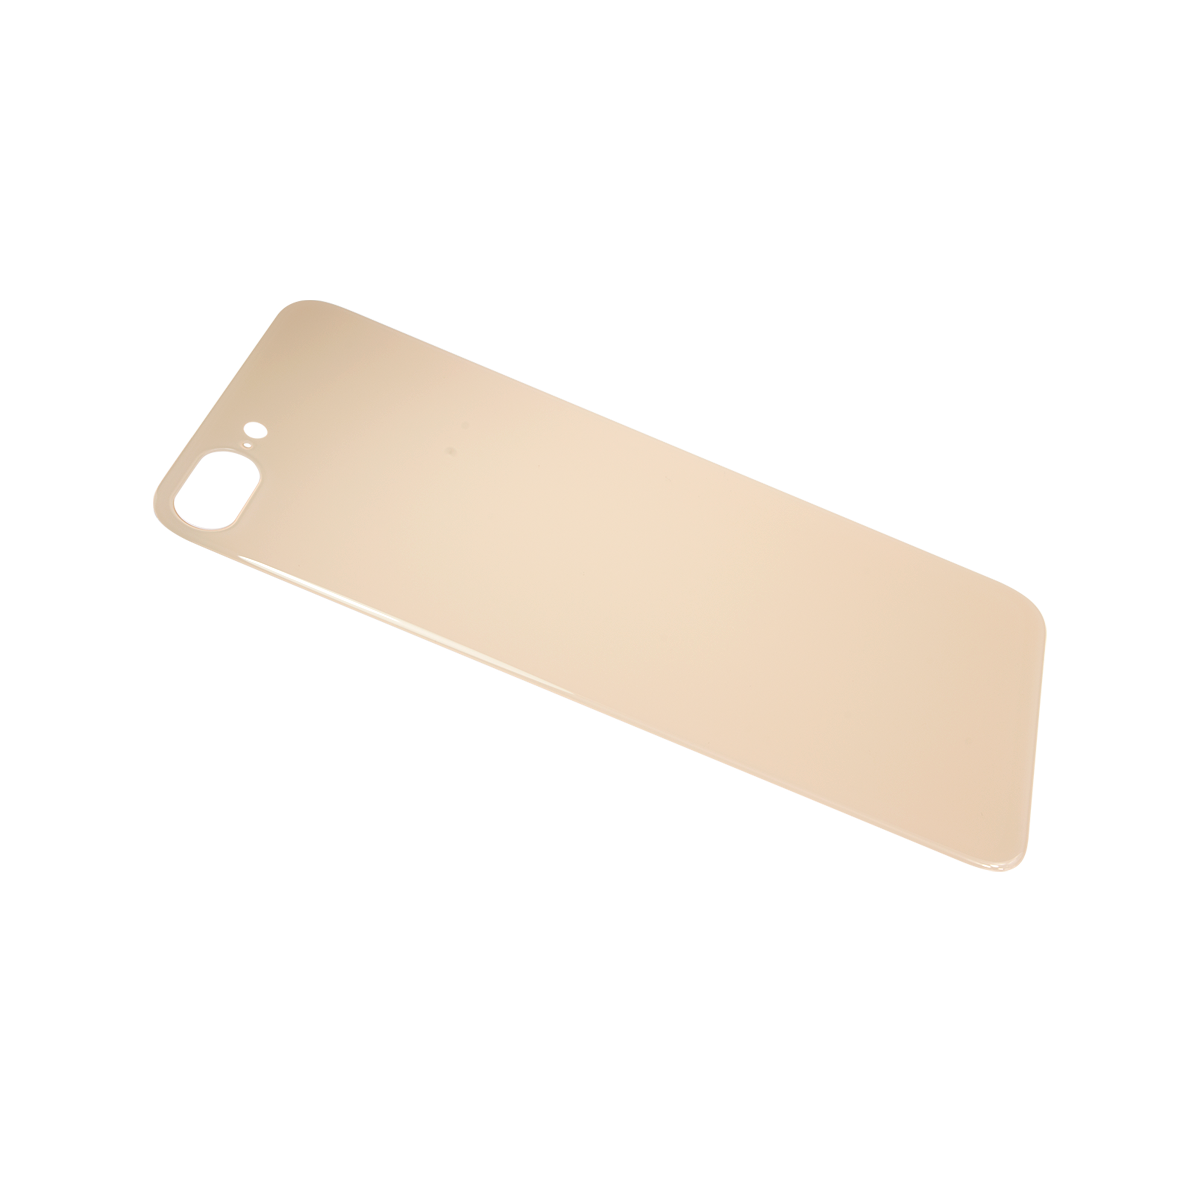 iPhone_8_Plus_Rear_Back_Glass_with_Big_Camera_Hole_Gold_side_SBDOTHGUNOTU.png